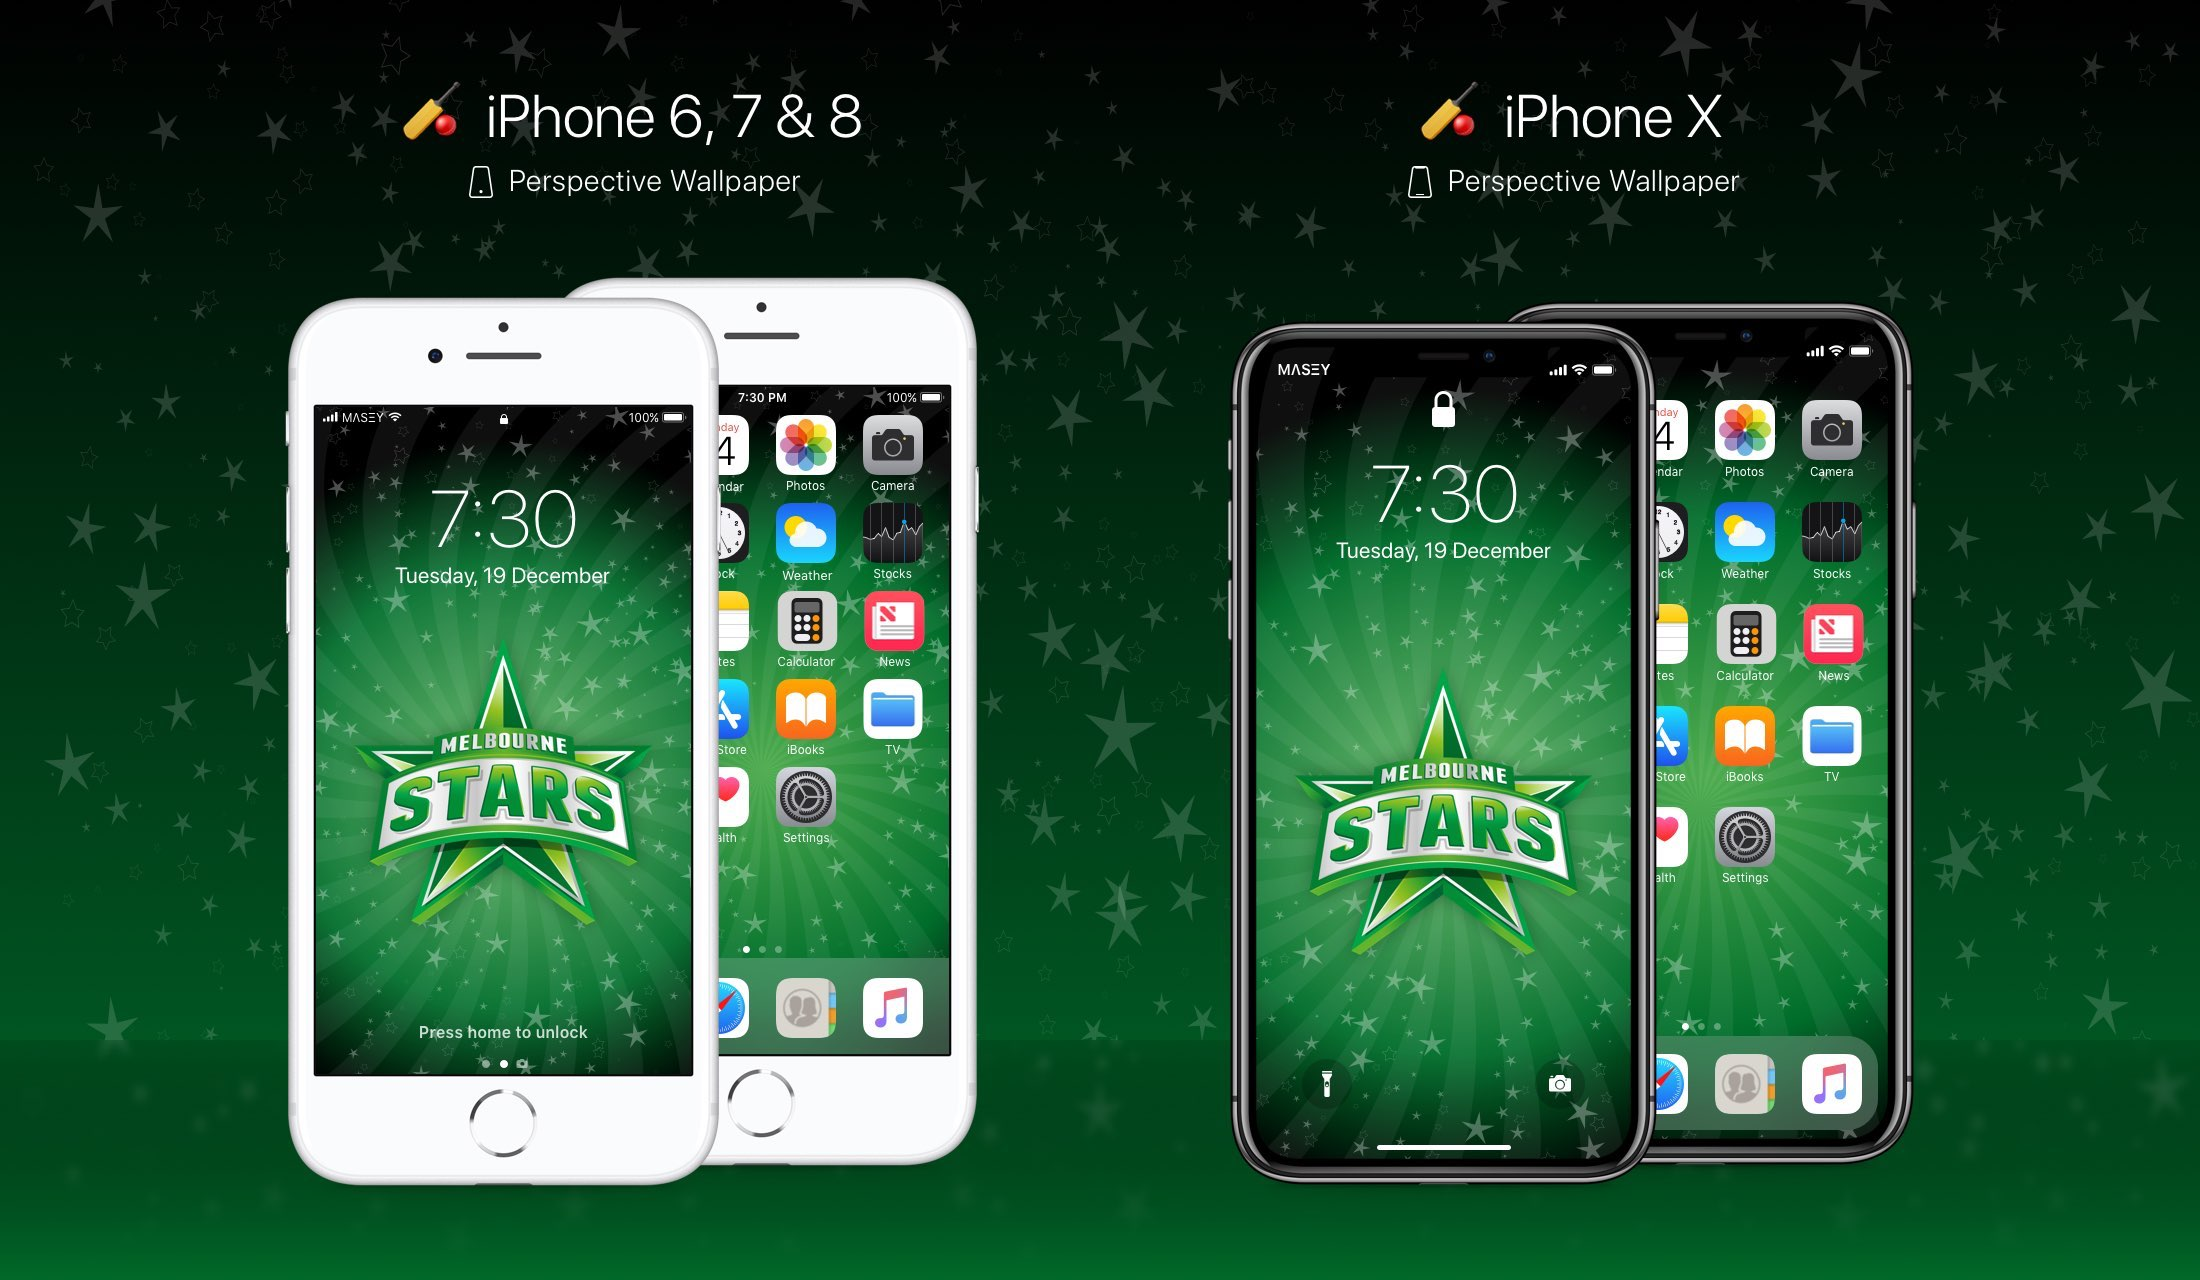 Melbourne Stars iPhone Wallpaper